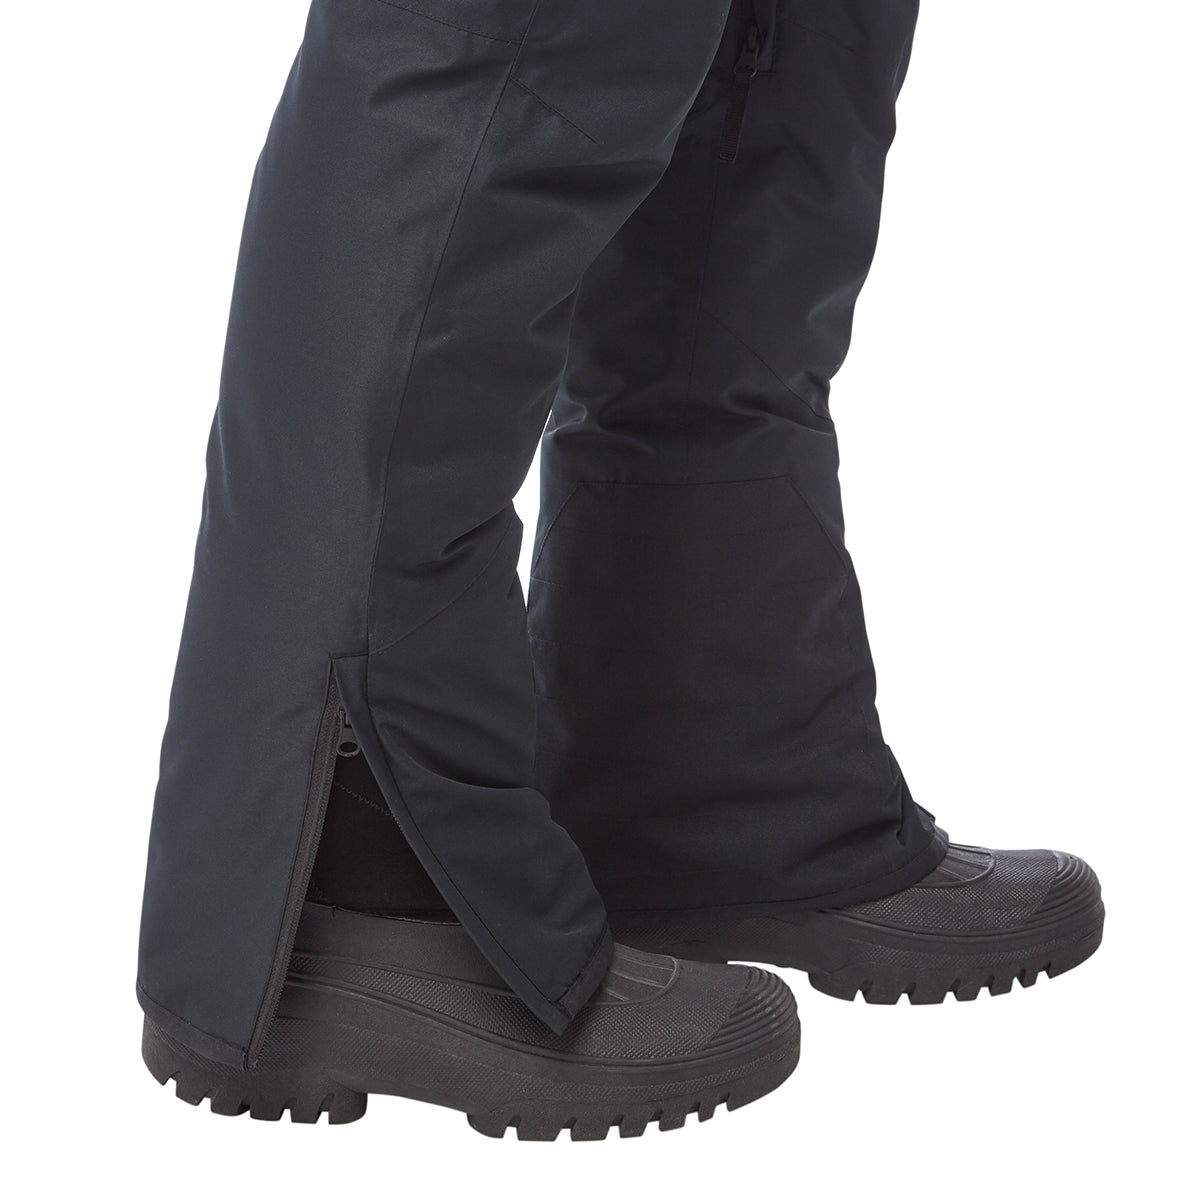 Spike Mens Waterproof Insulated Ski Pants - Black image 4